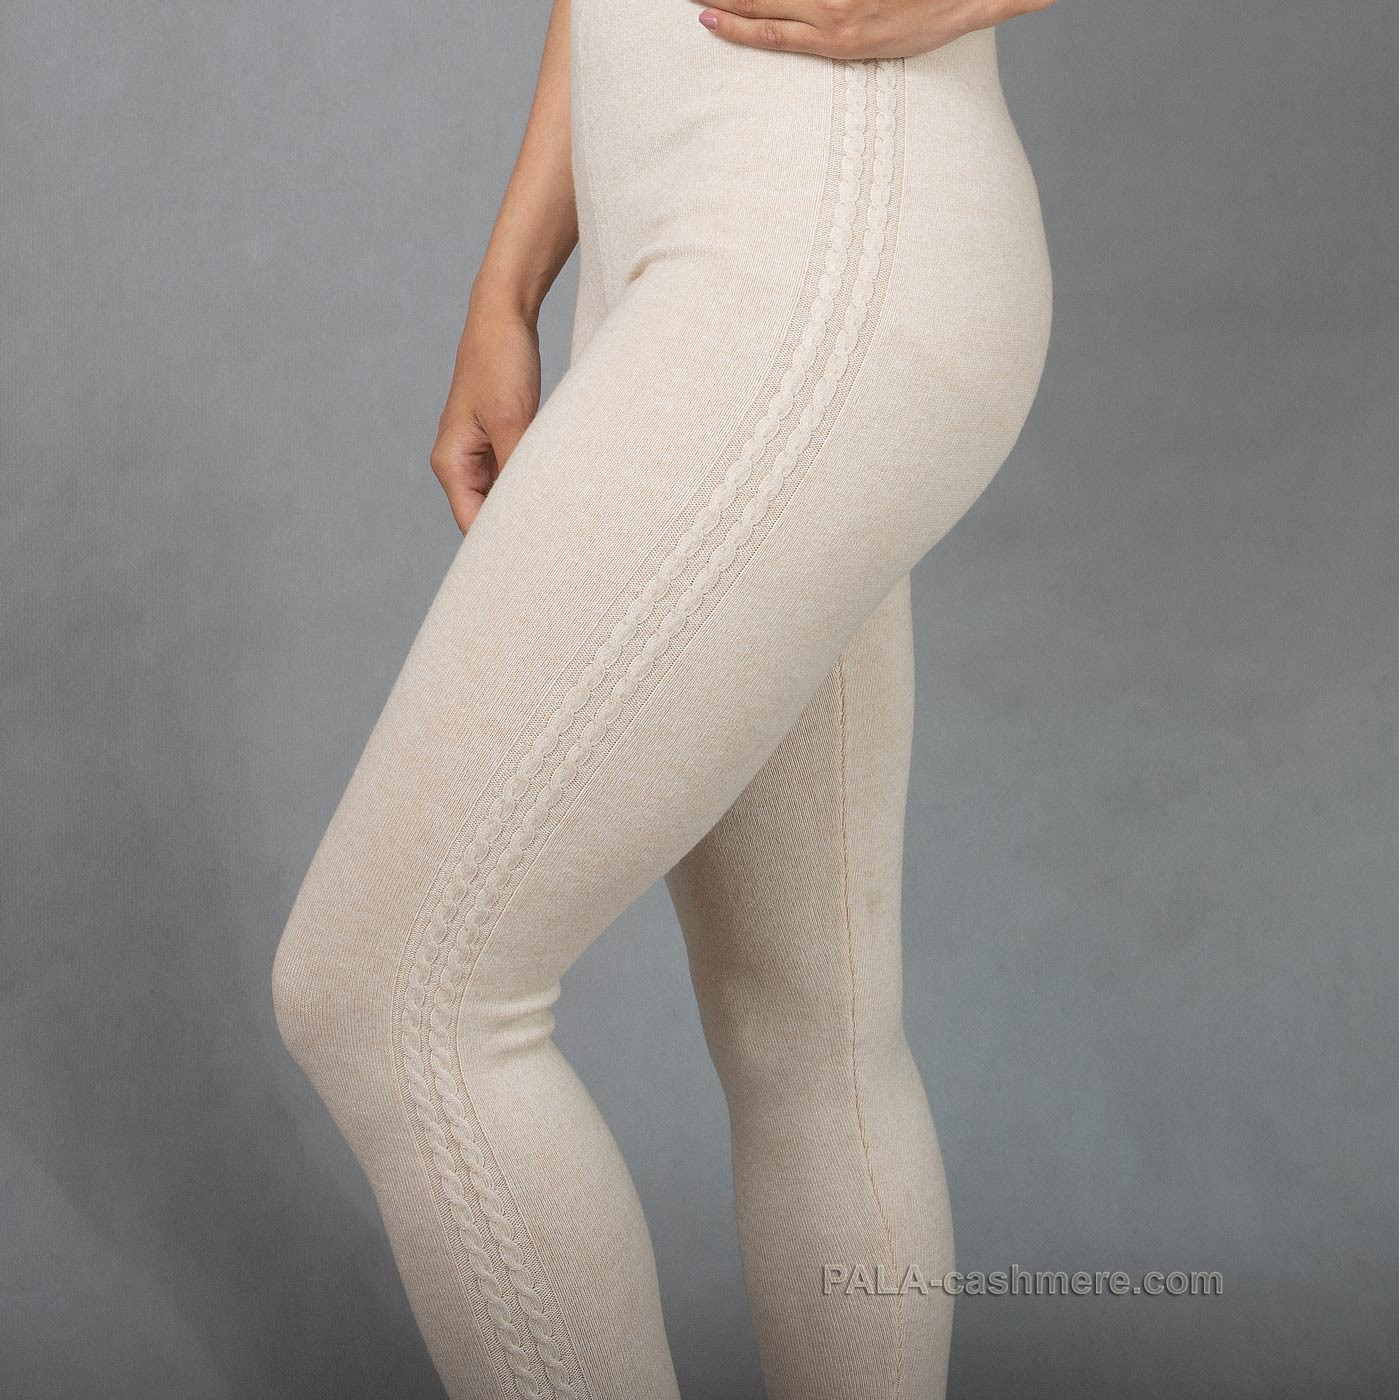 Leggings are woolly and light